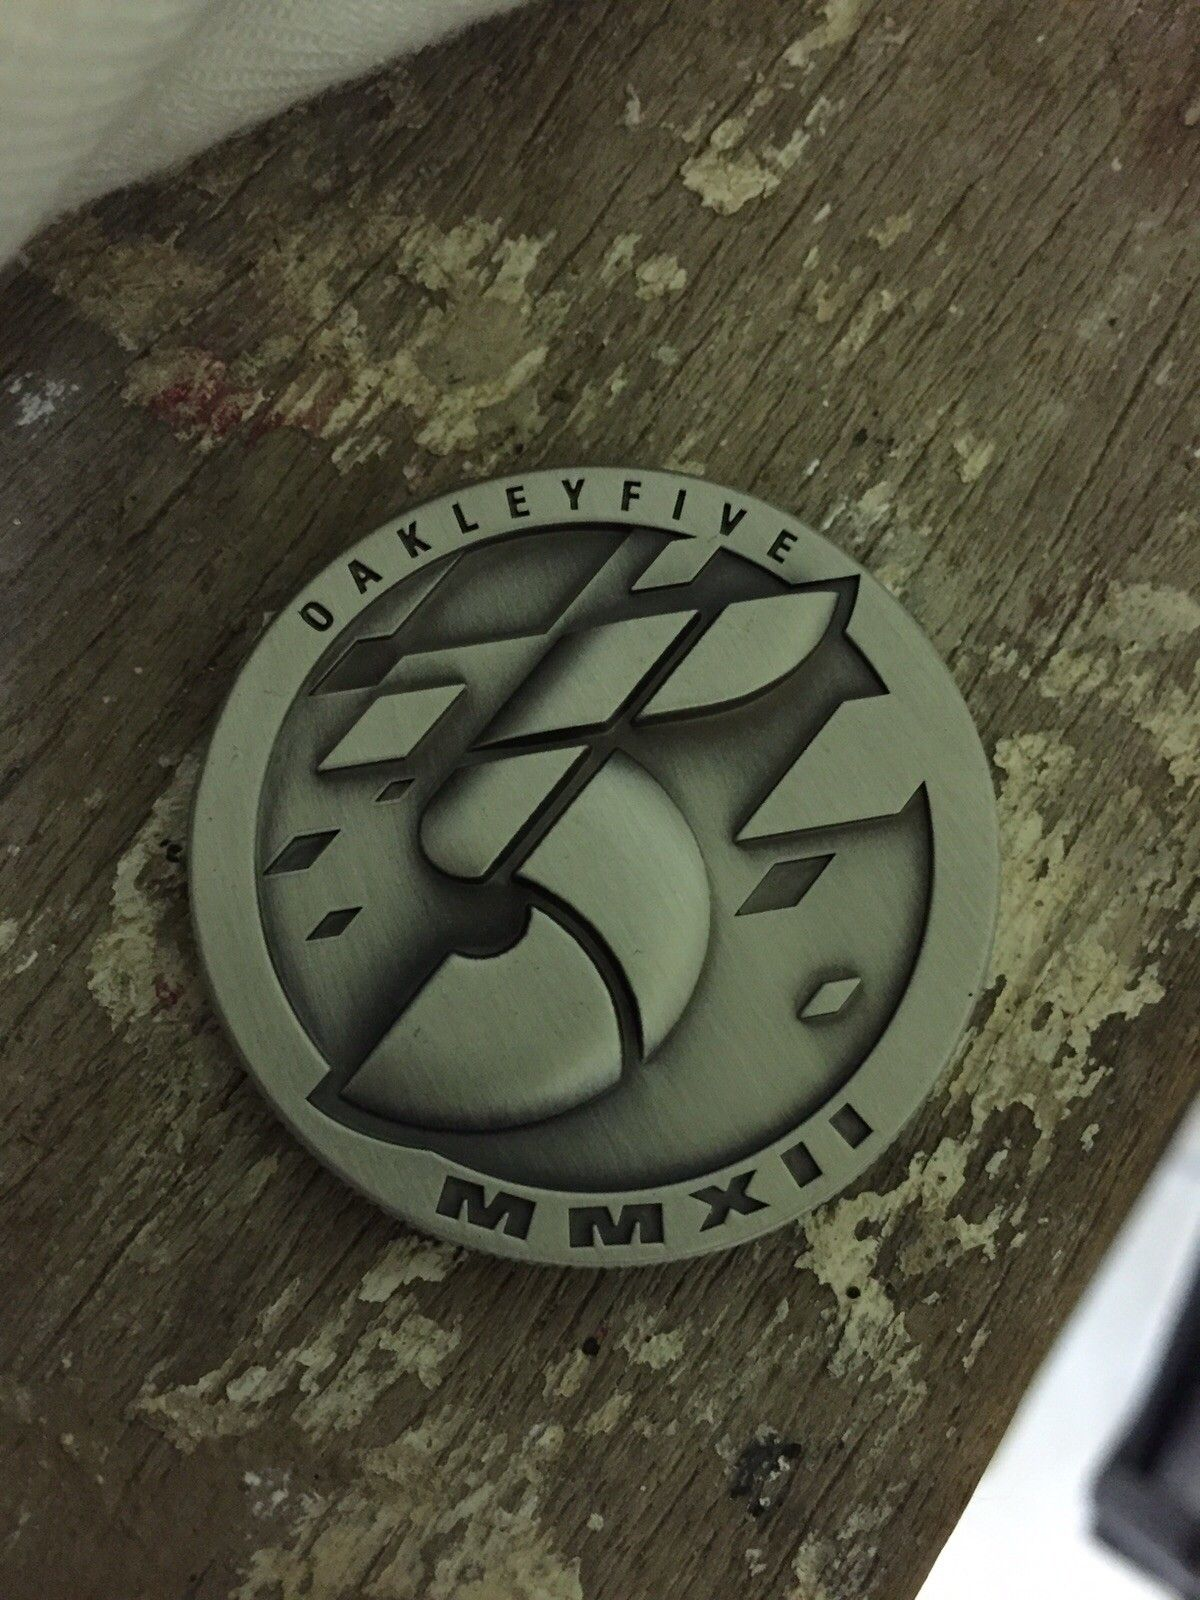 Or Trade Five Coin - image.jpg